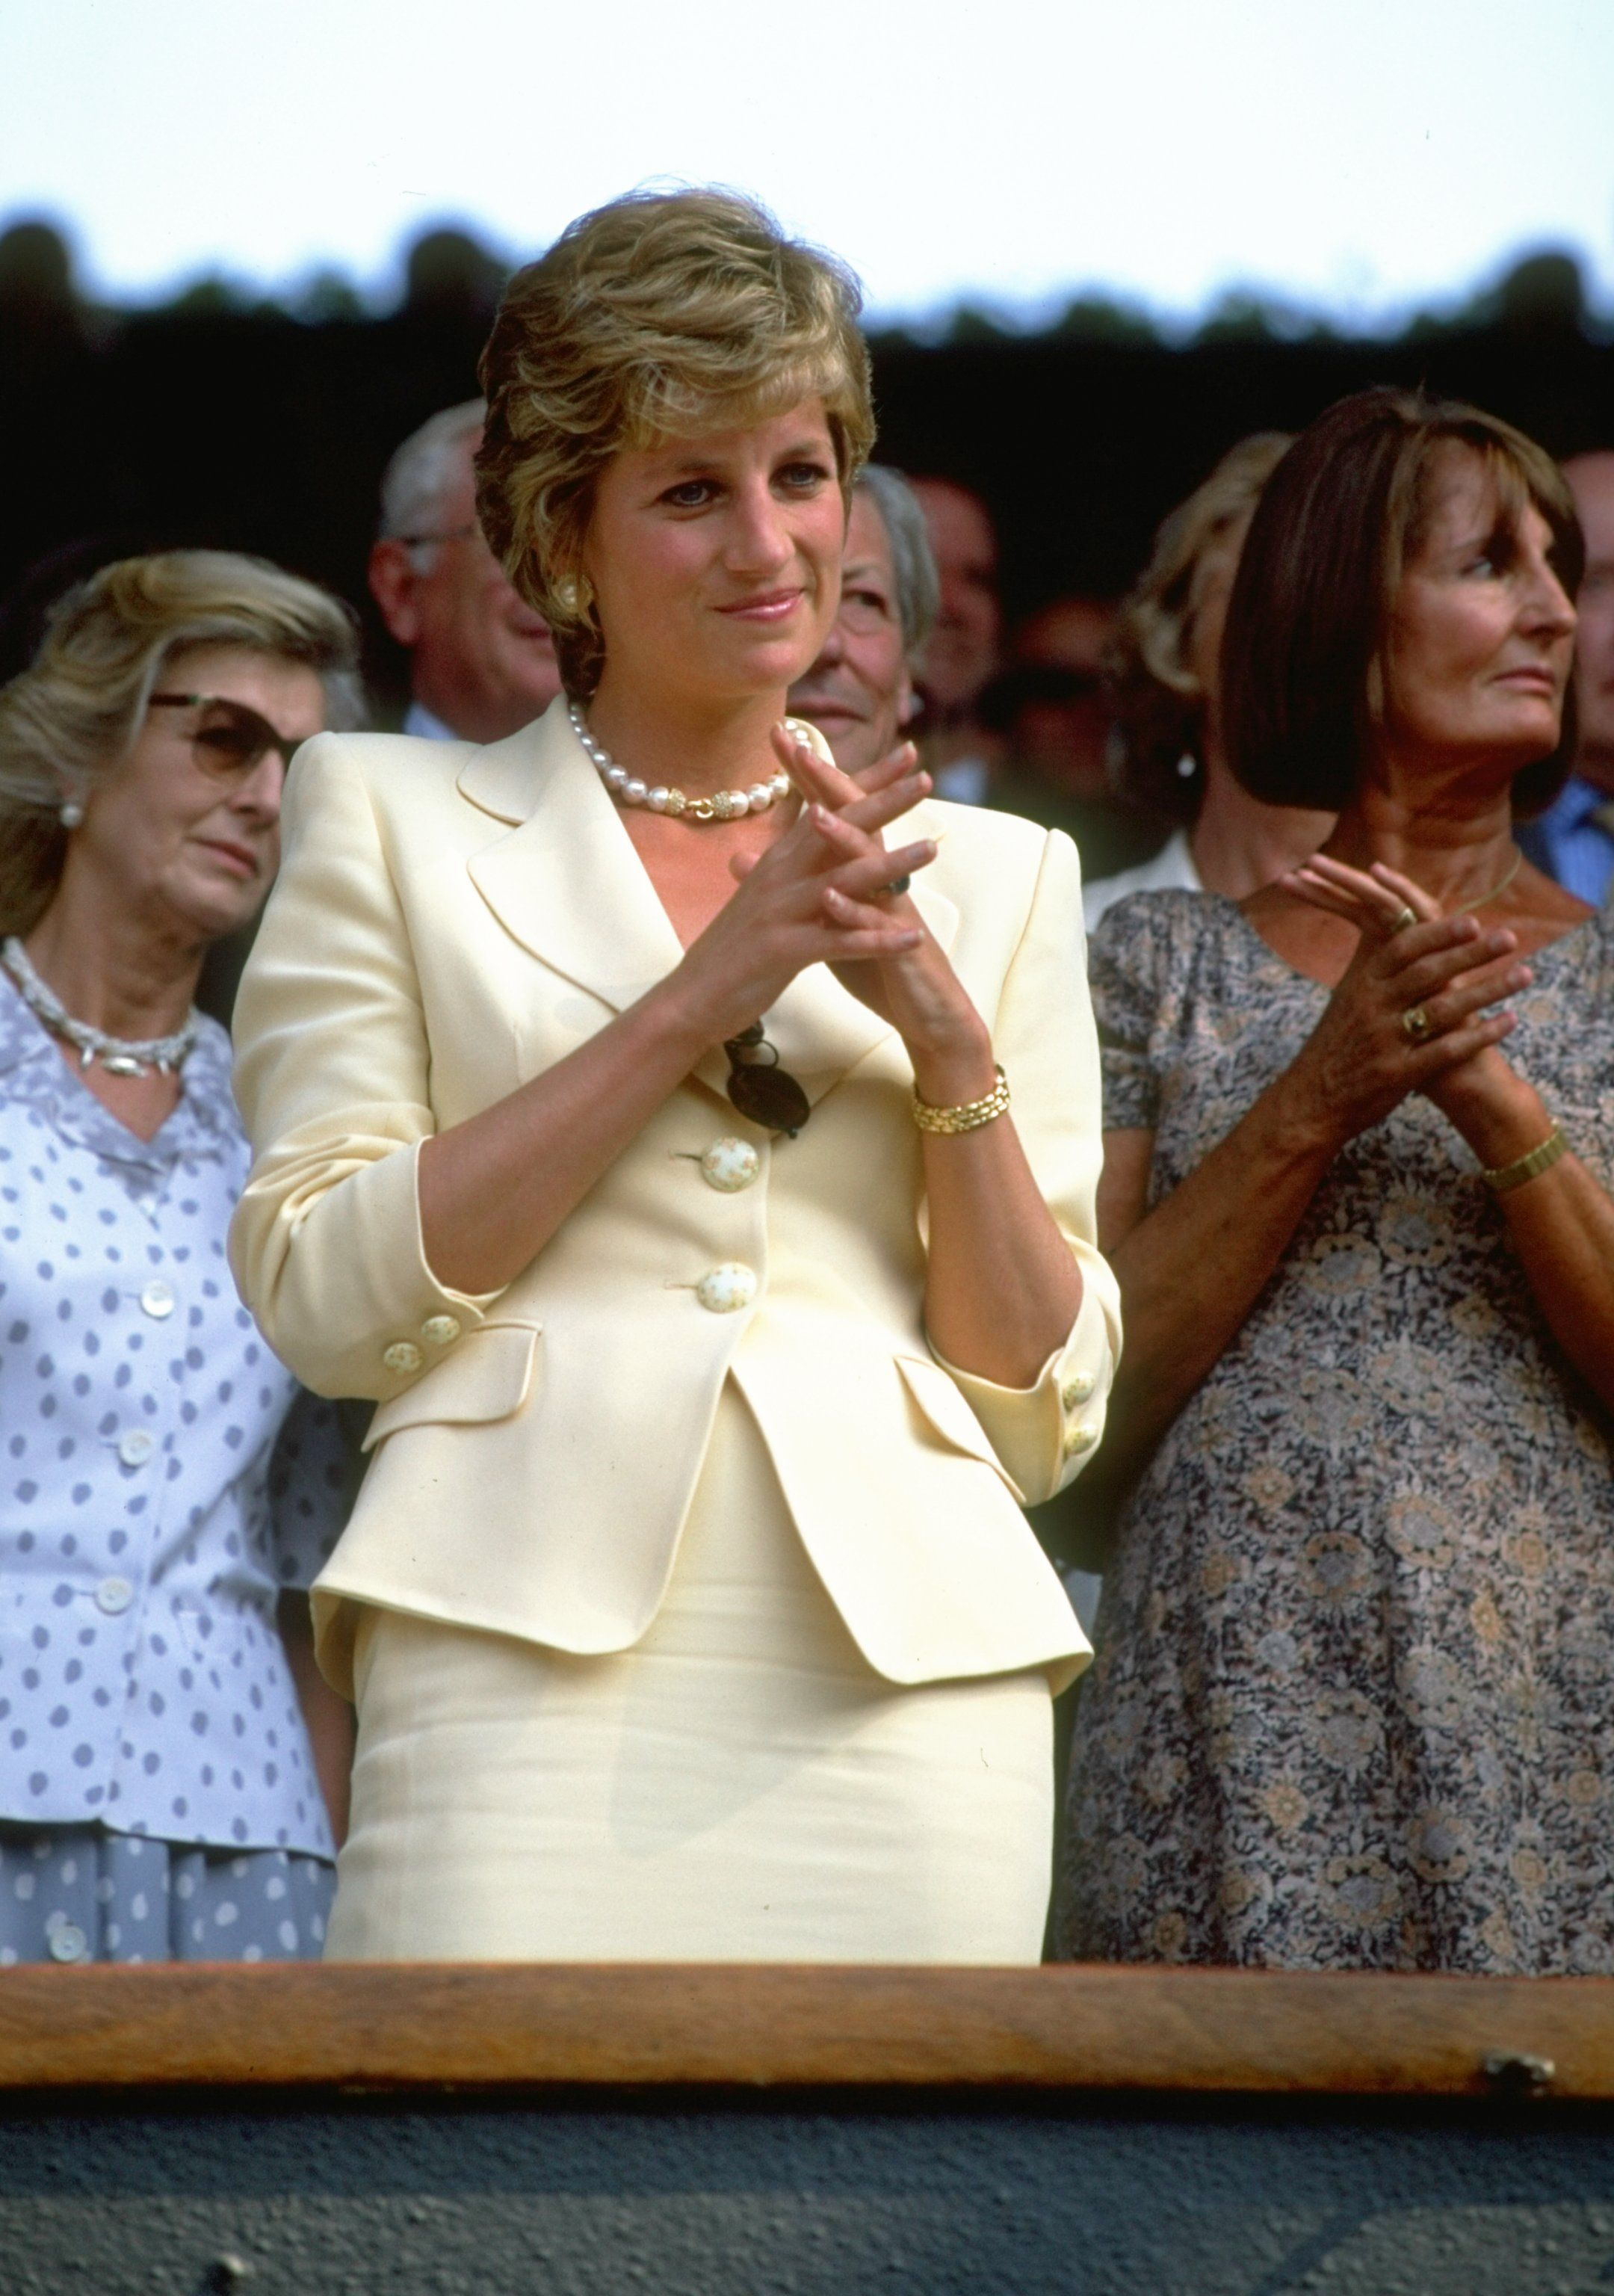 Princess Diana in a fashionable outfit / Getty Images